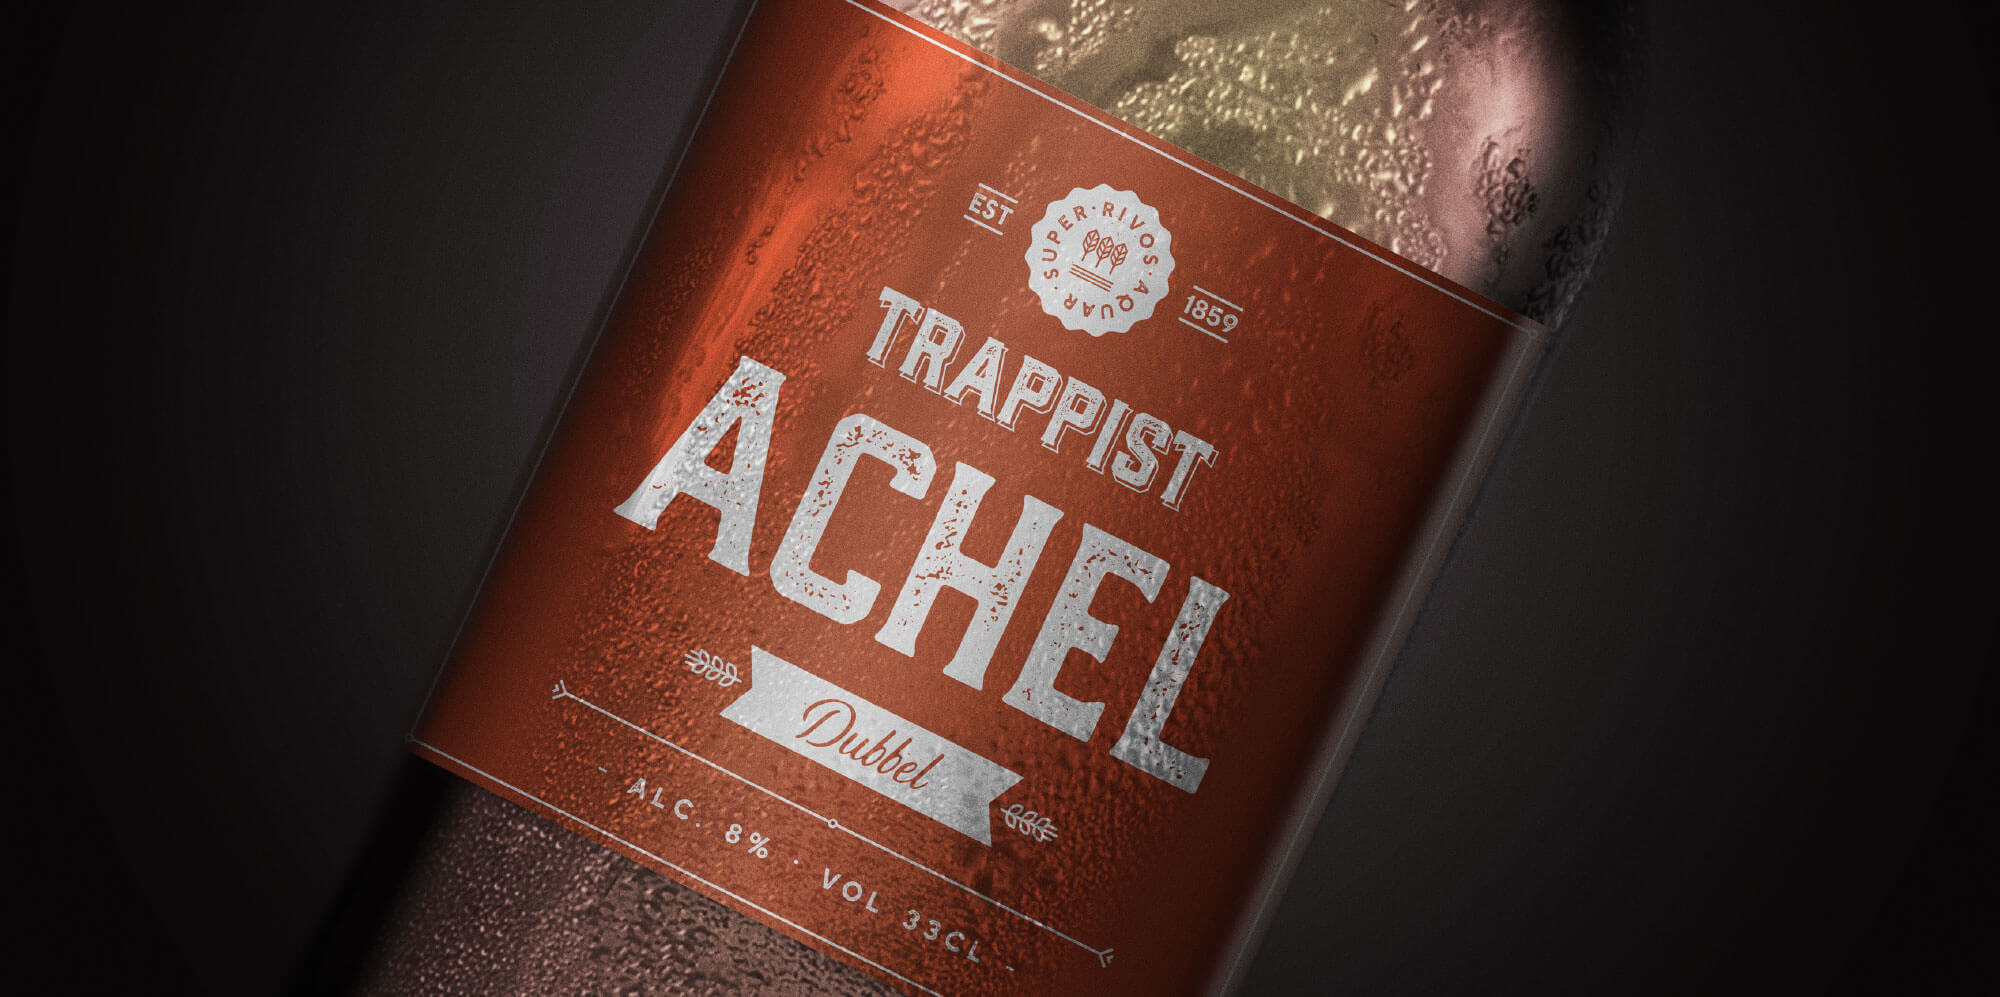 A brand new label for the Achel Trappist beer